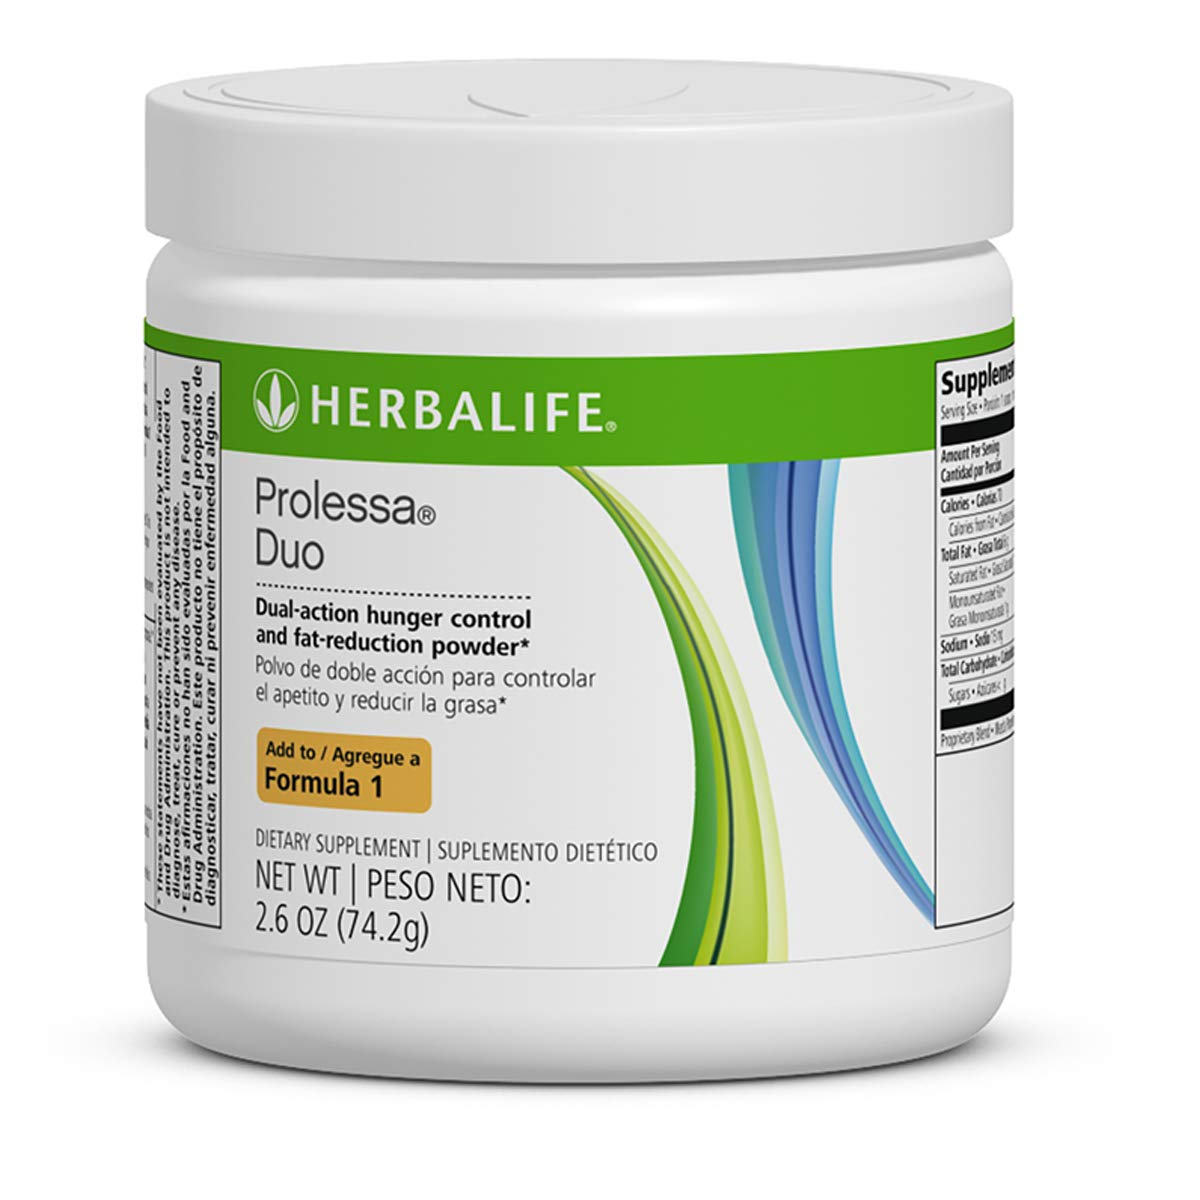 Weight-Loss Prolessa Duo 7-Day Program 74.2gr Control Hunger Snack